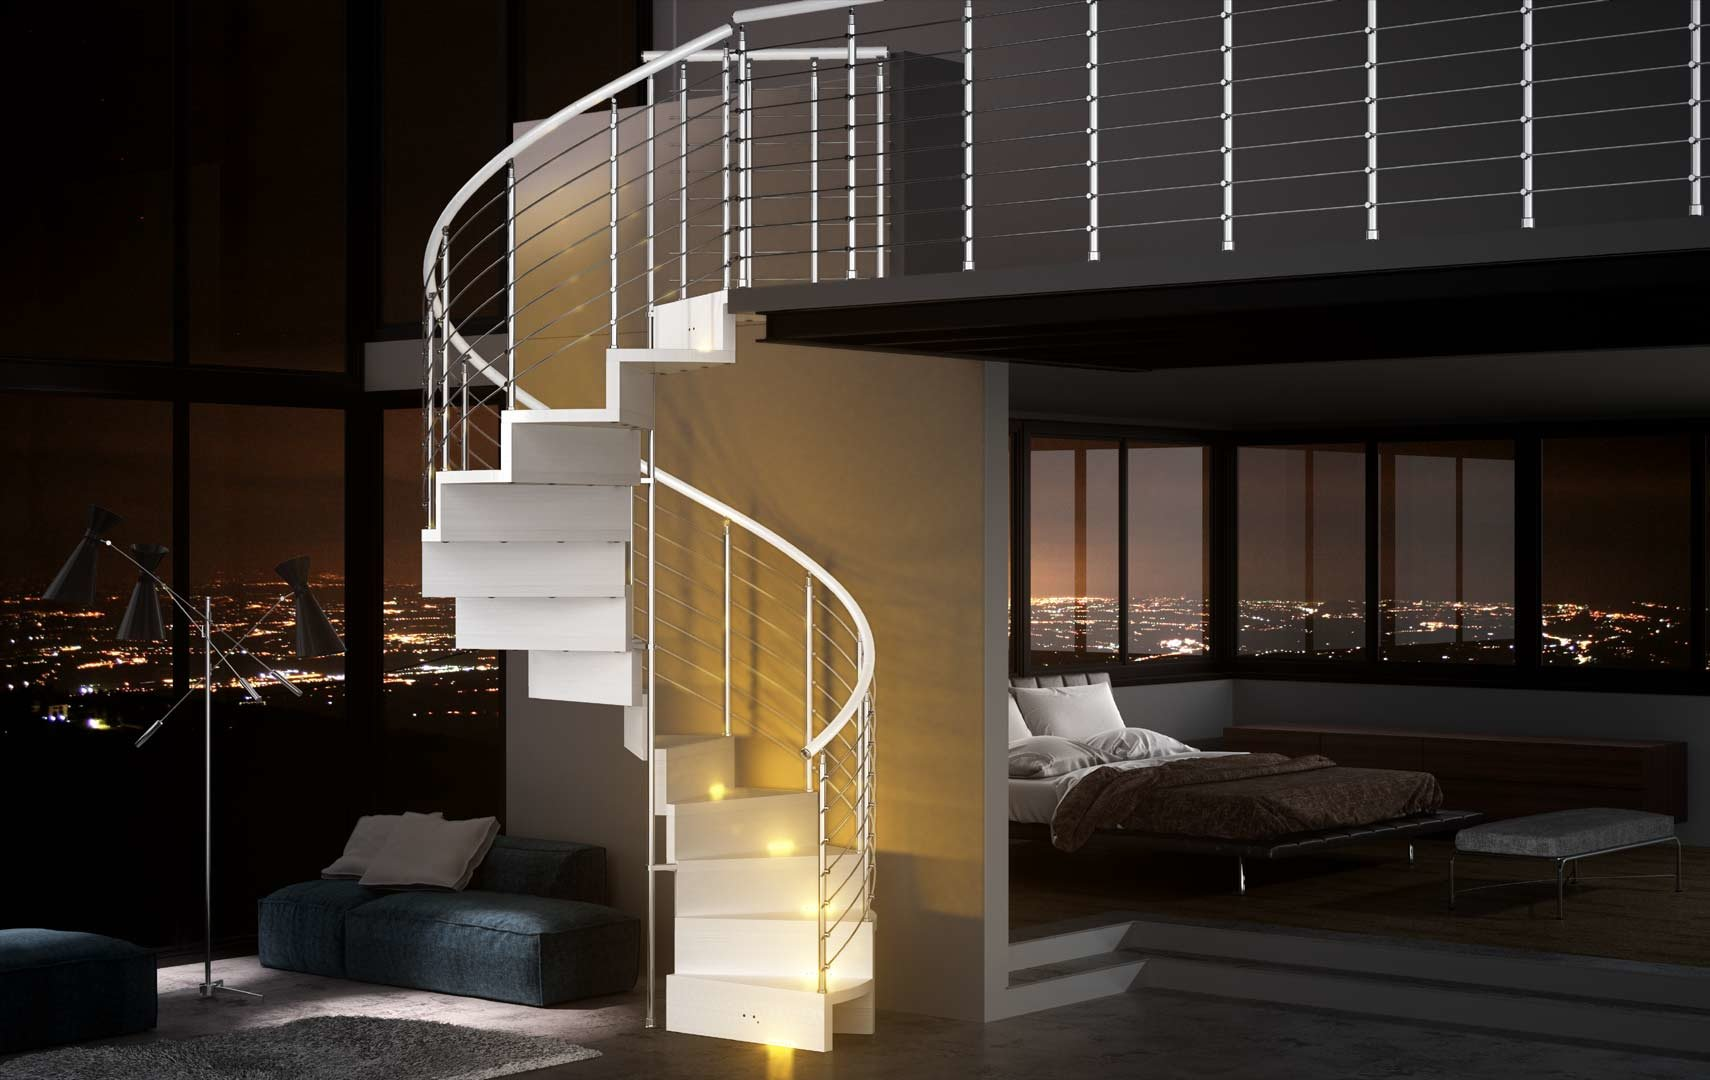 escalier en colima on comment poser cet escalier design. Black Bedroom Furniture Sets. Home Design Ideas